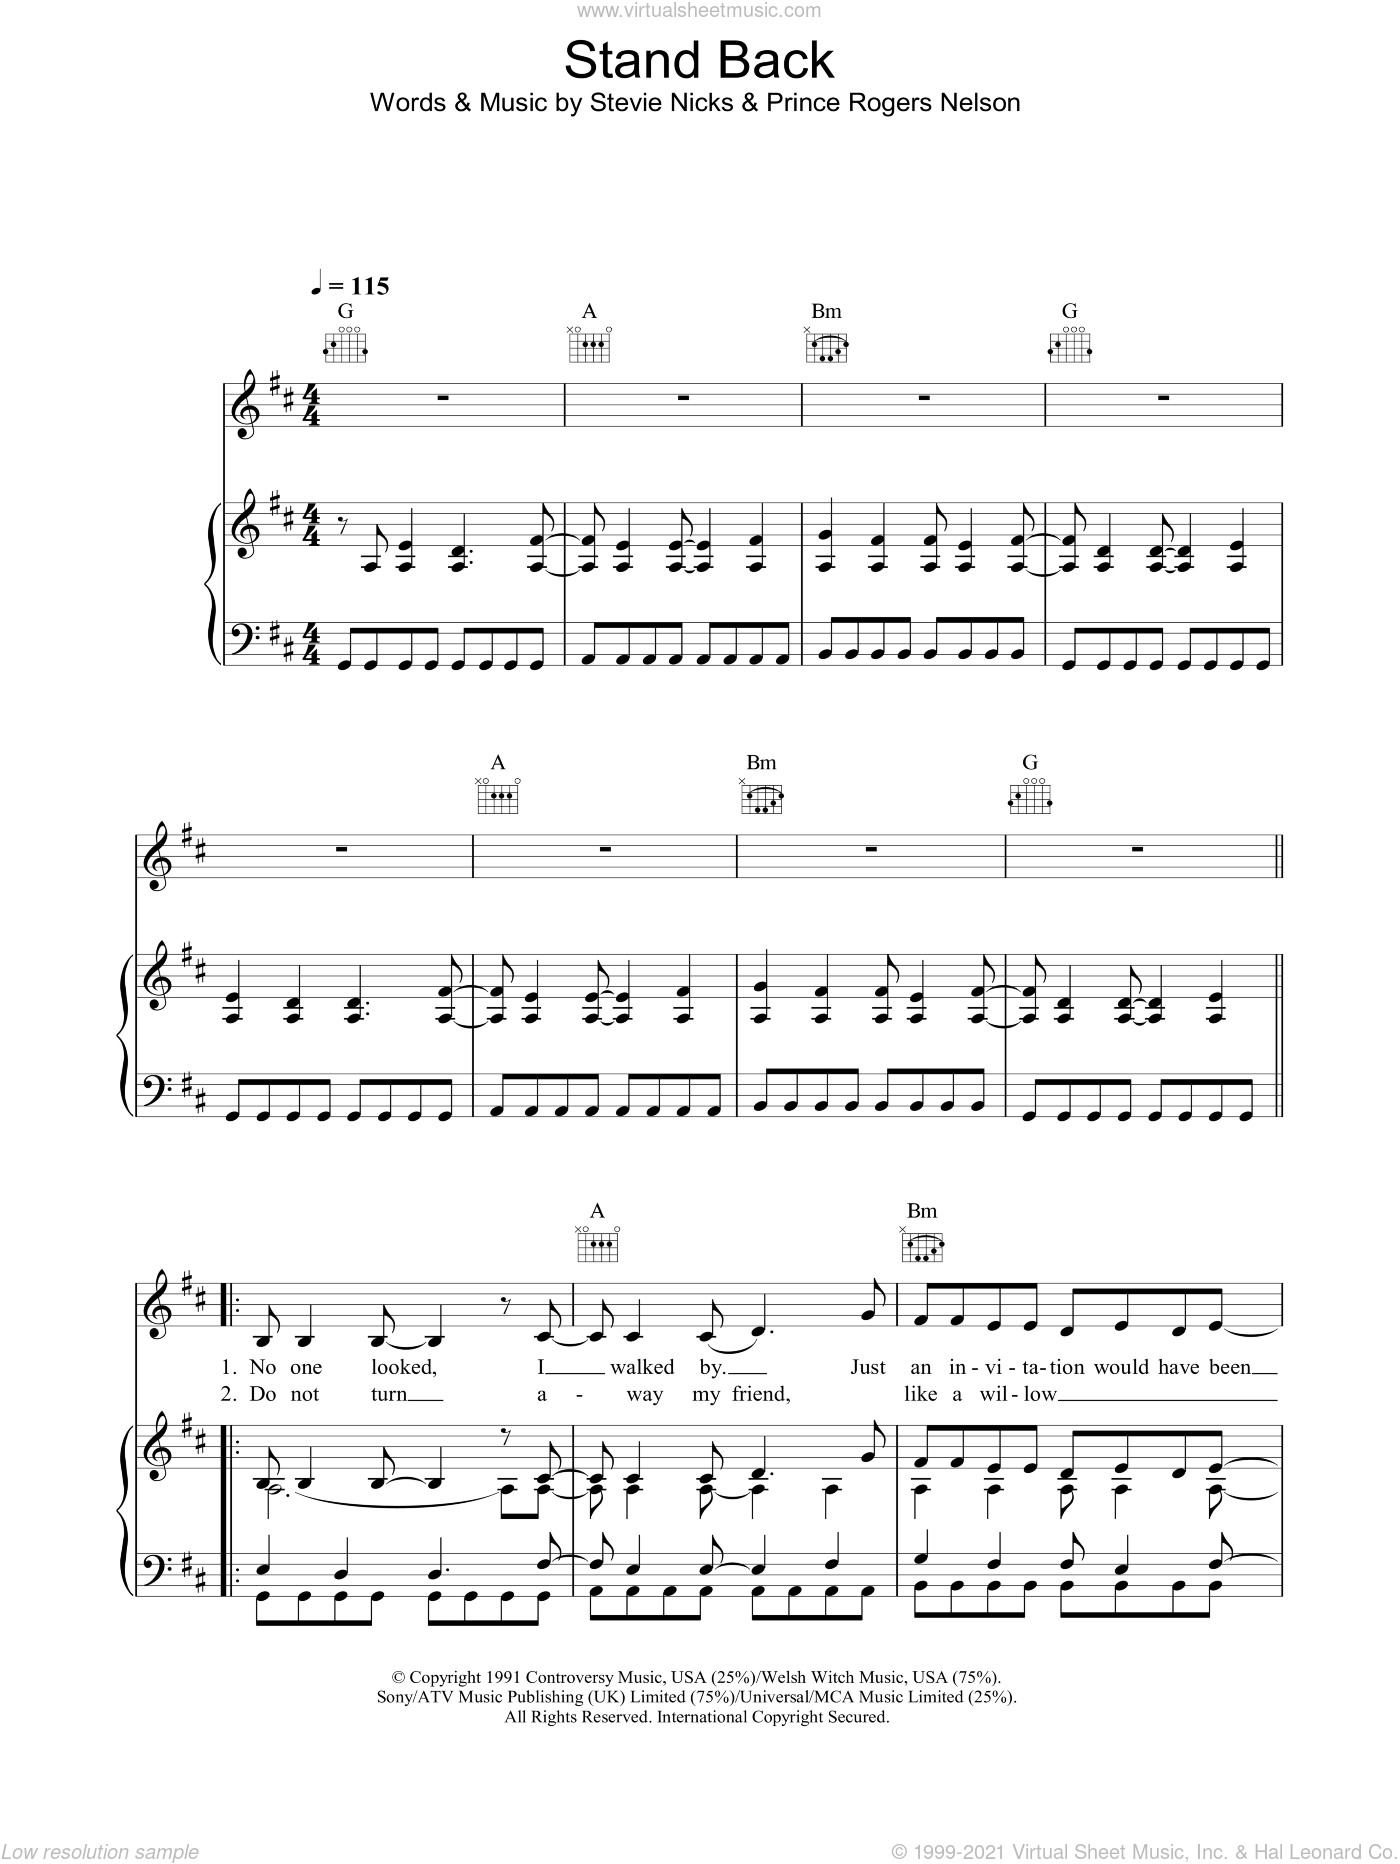 Stand Back sheet music for voice, piano or guitar by Prince Rogers Nelson